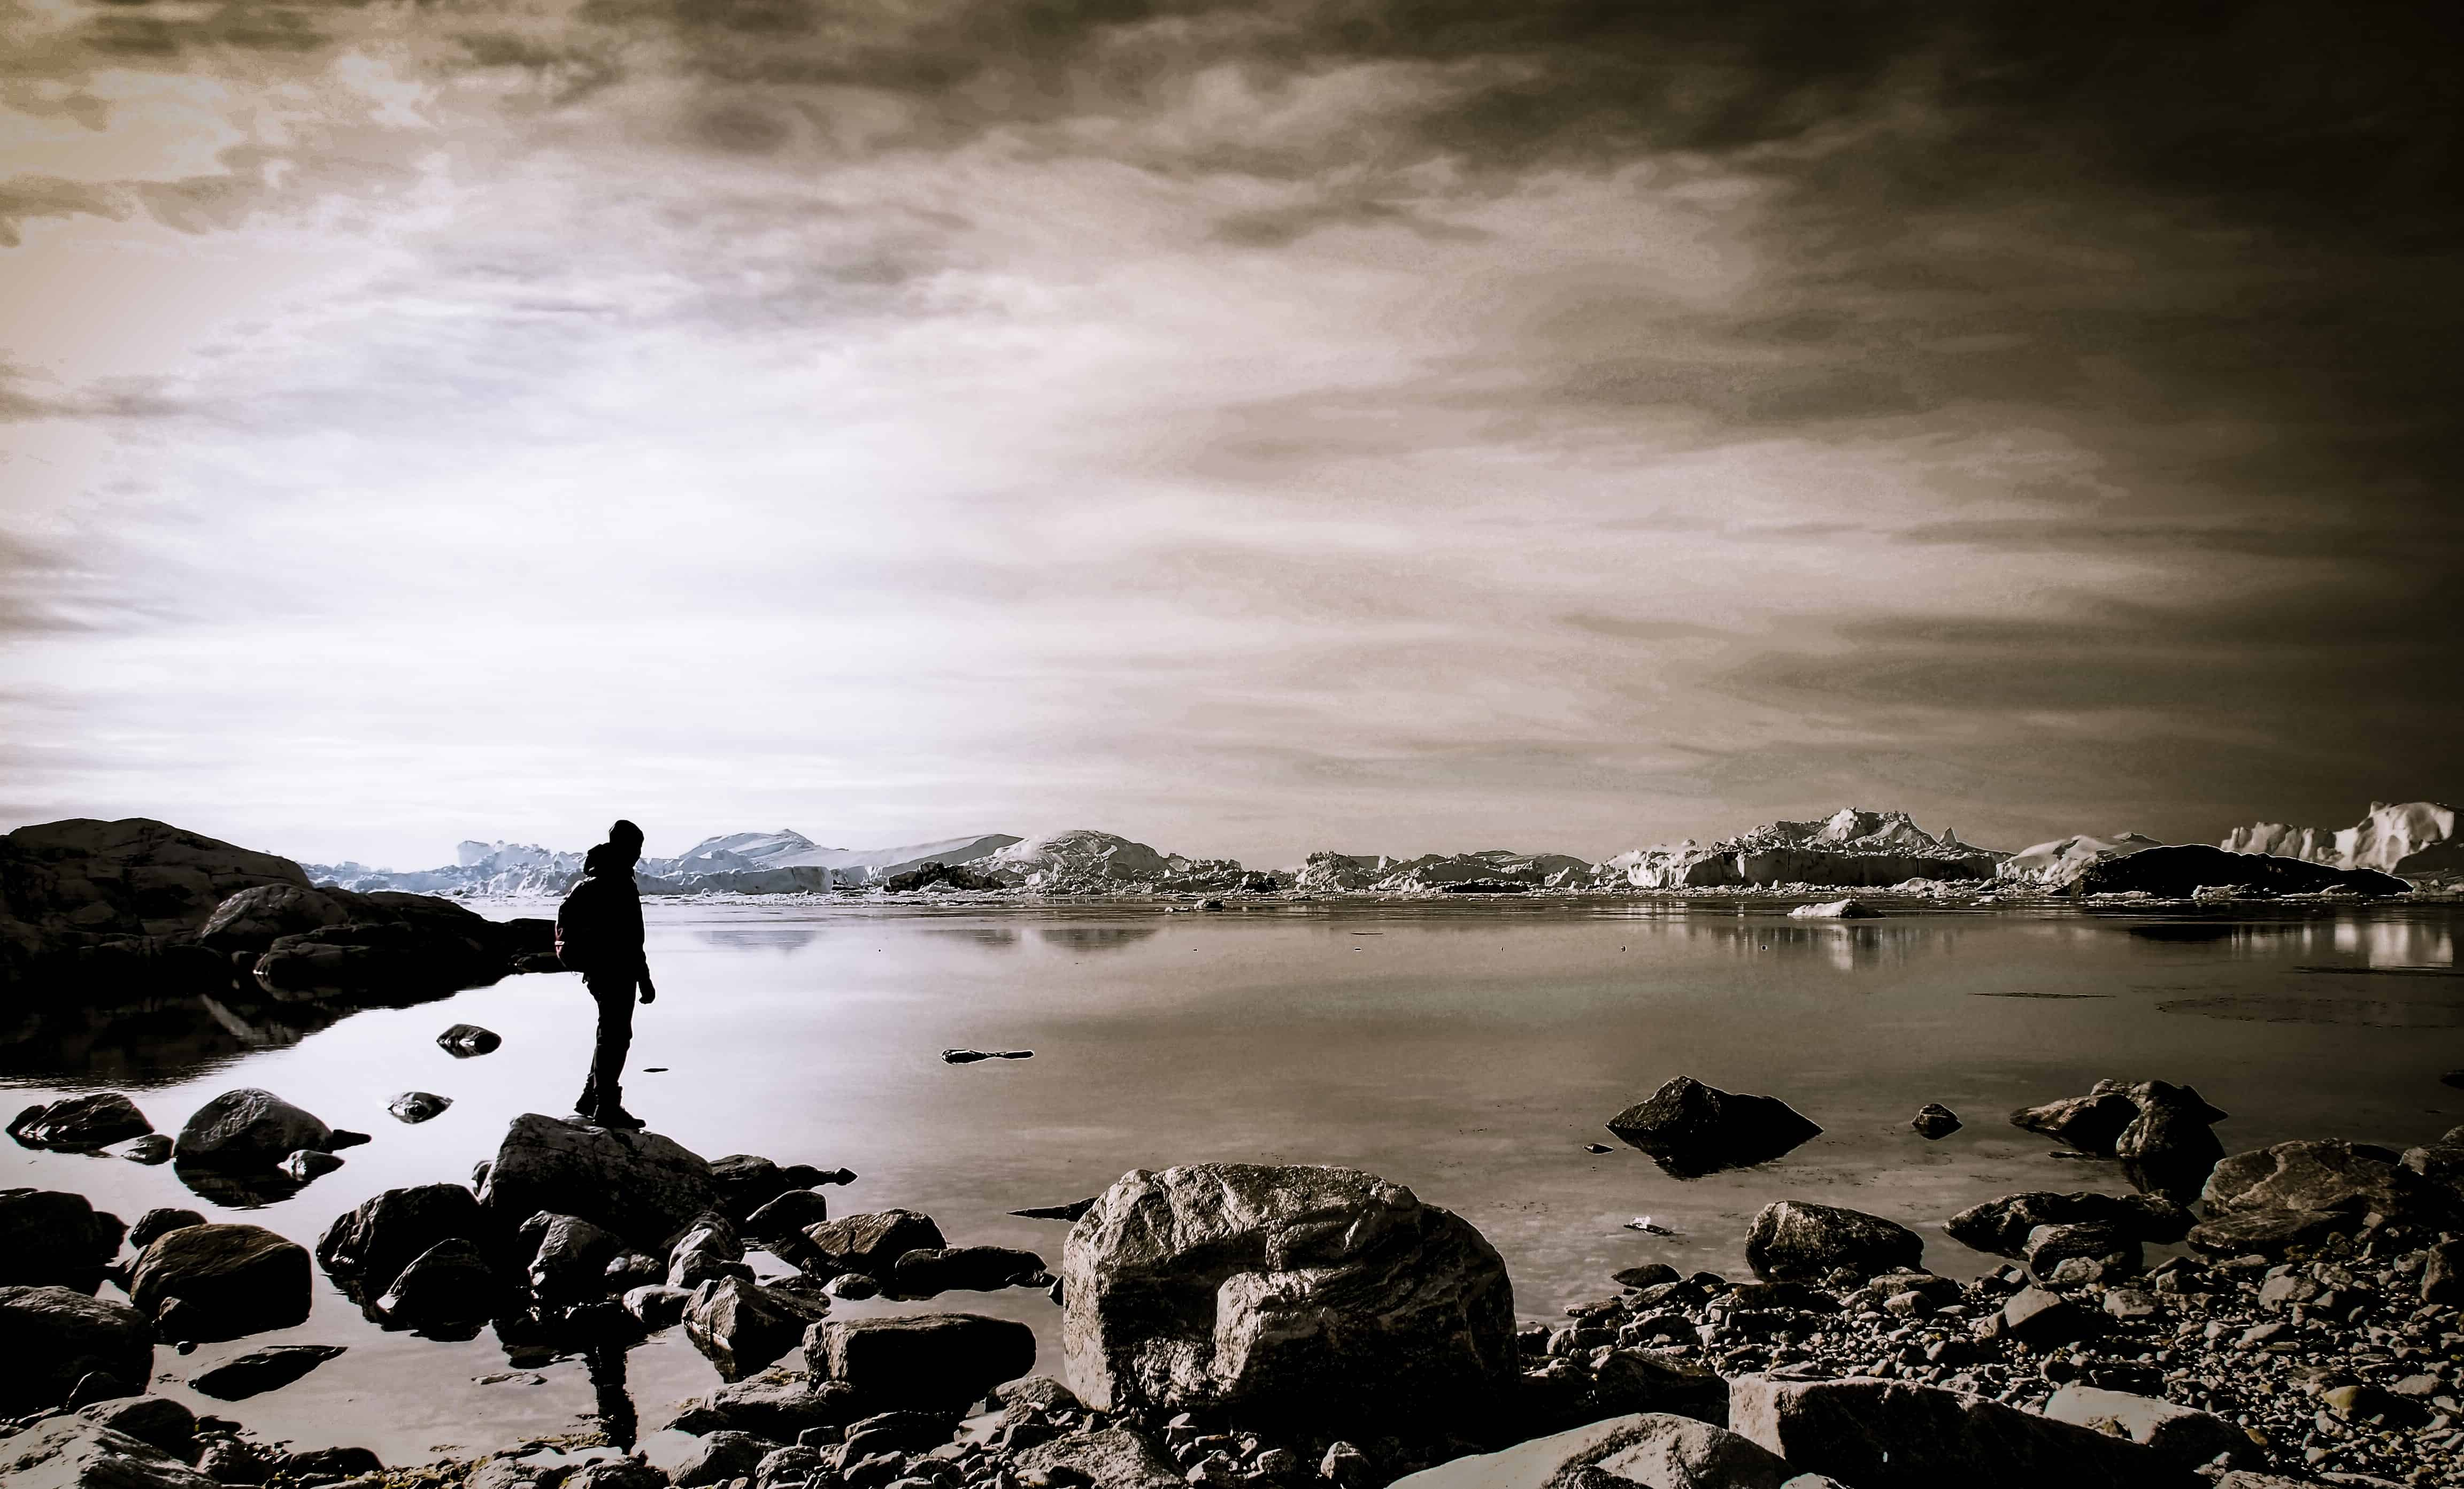 Image result for sea1000 × 604 person standing on rock near body of water